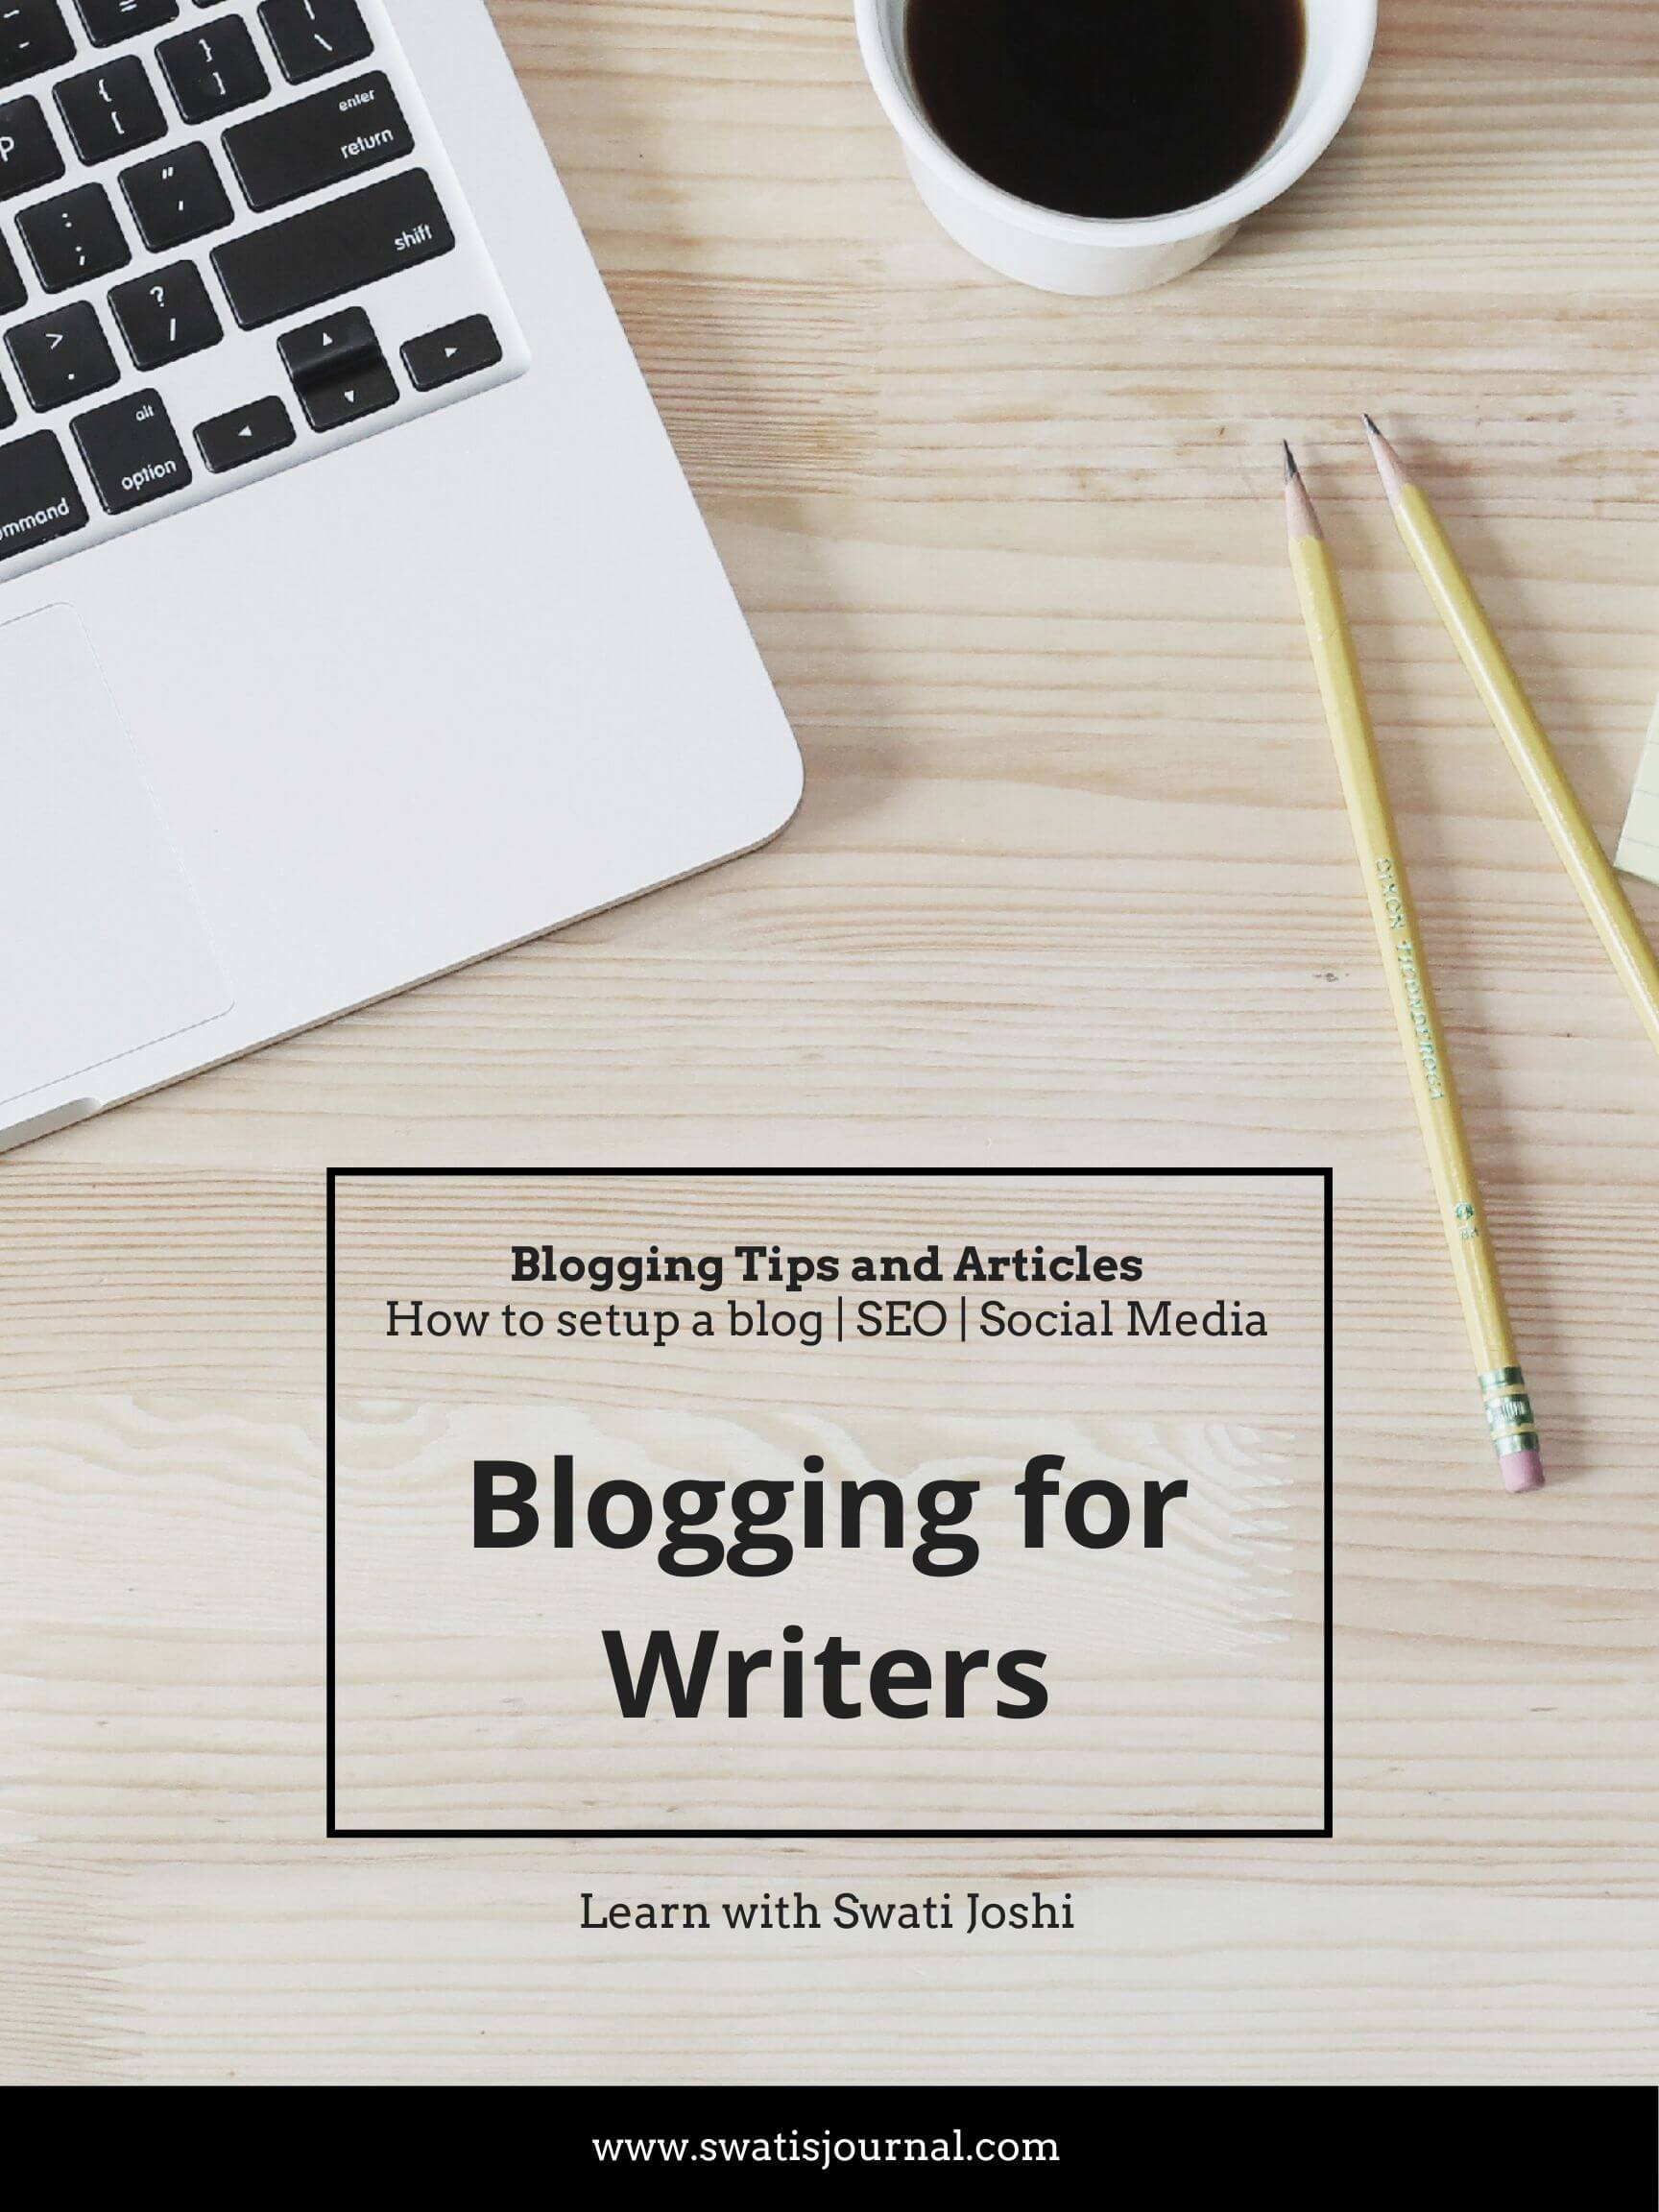 blogging for writers poster - swati's Journal short story